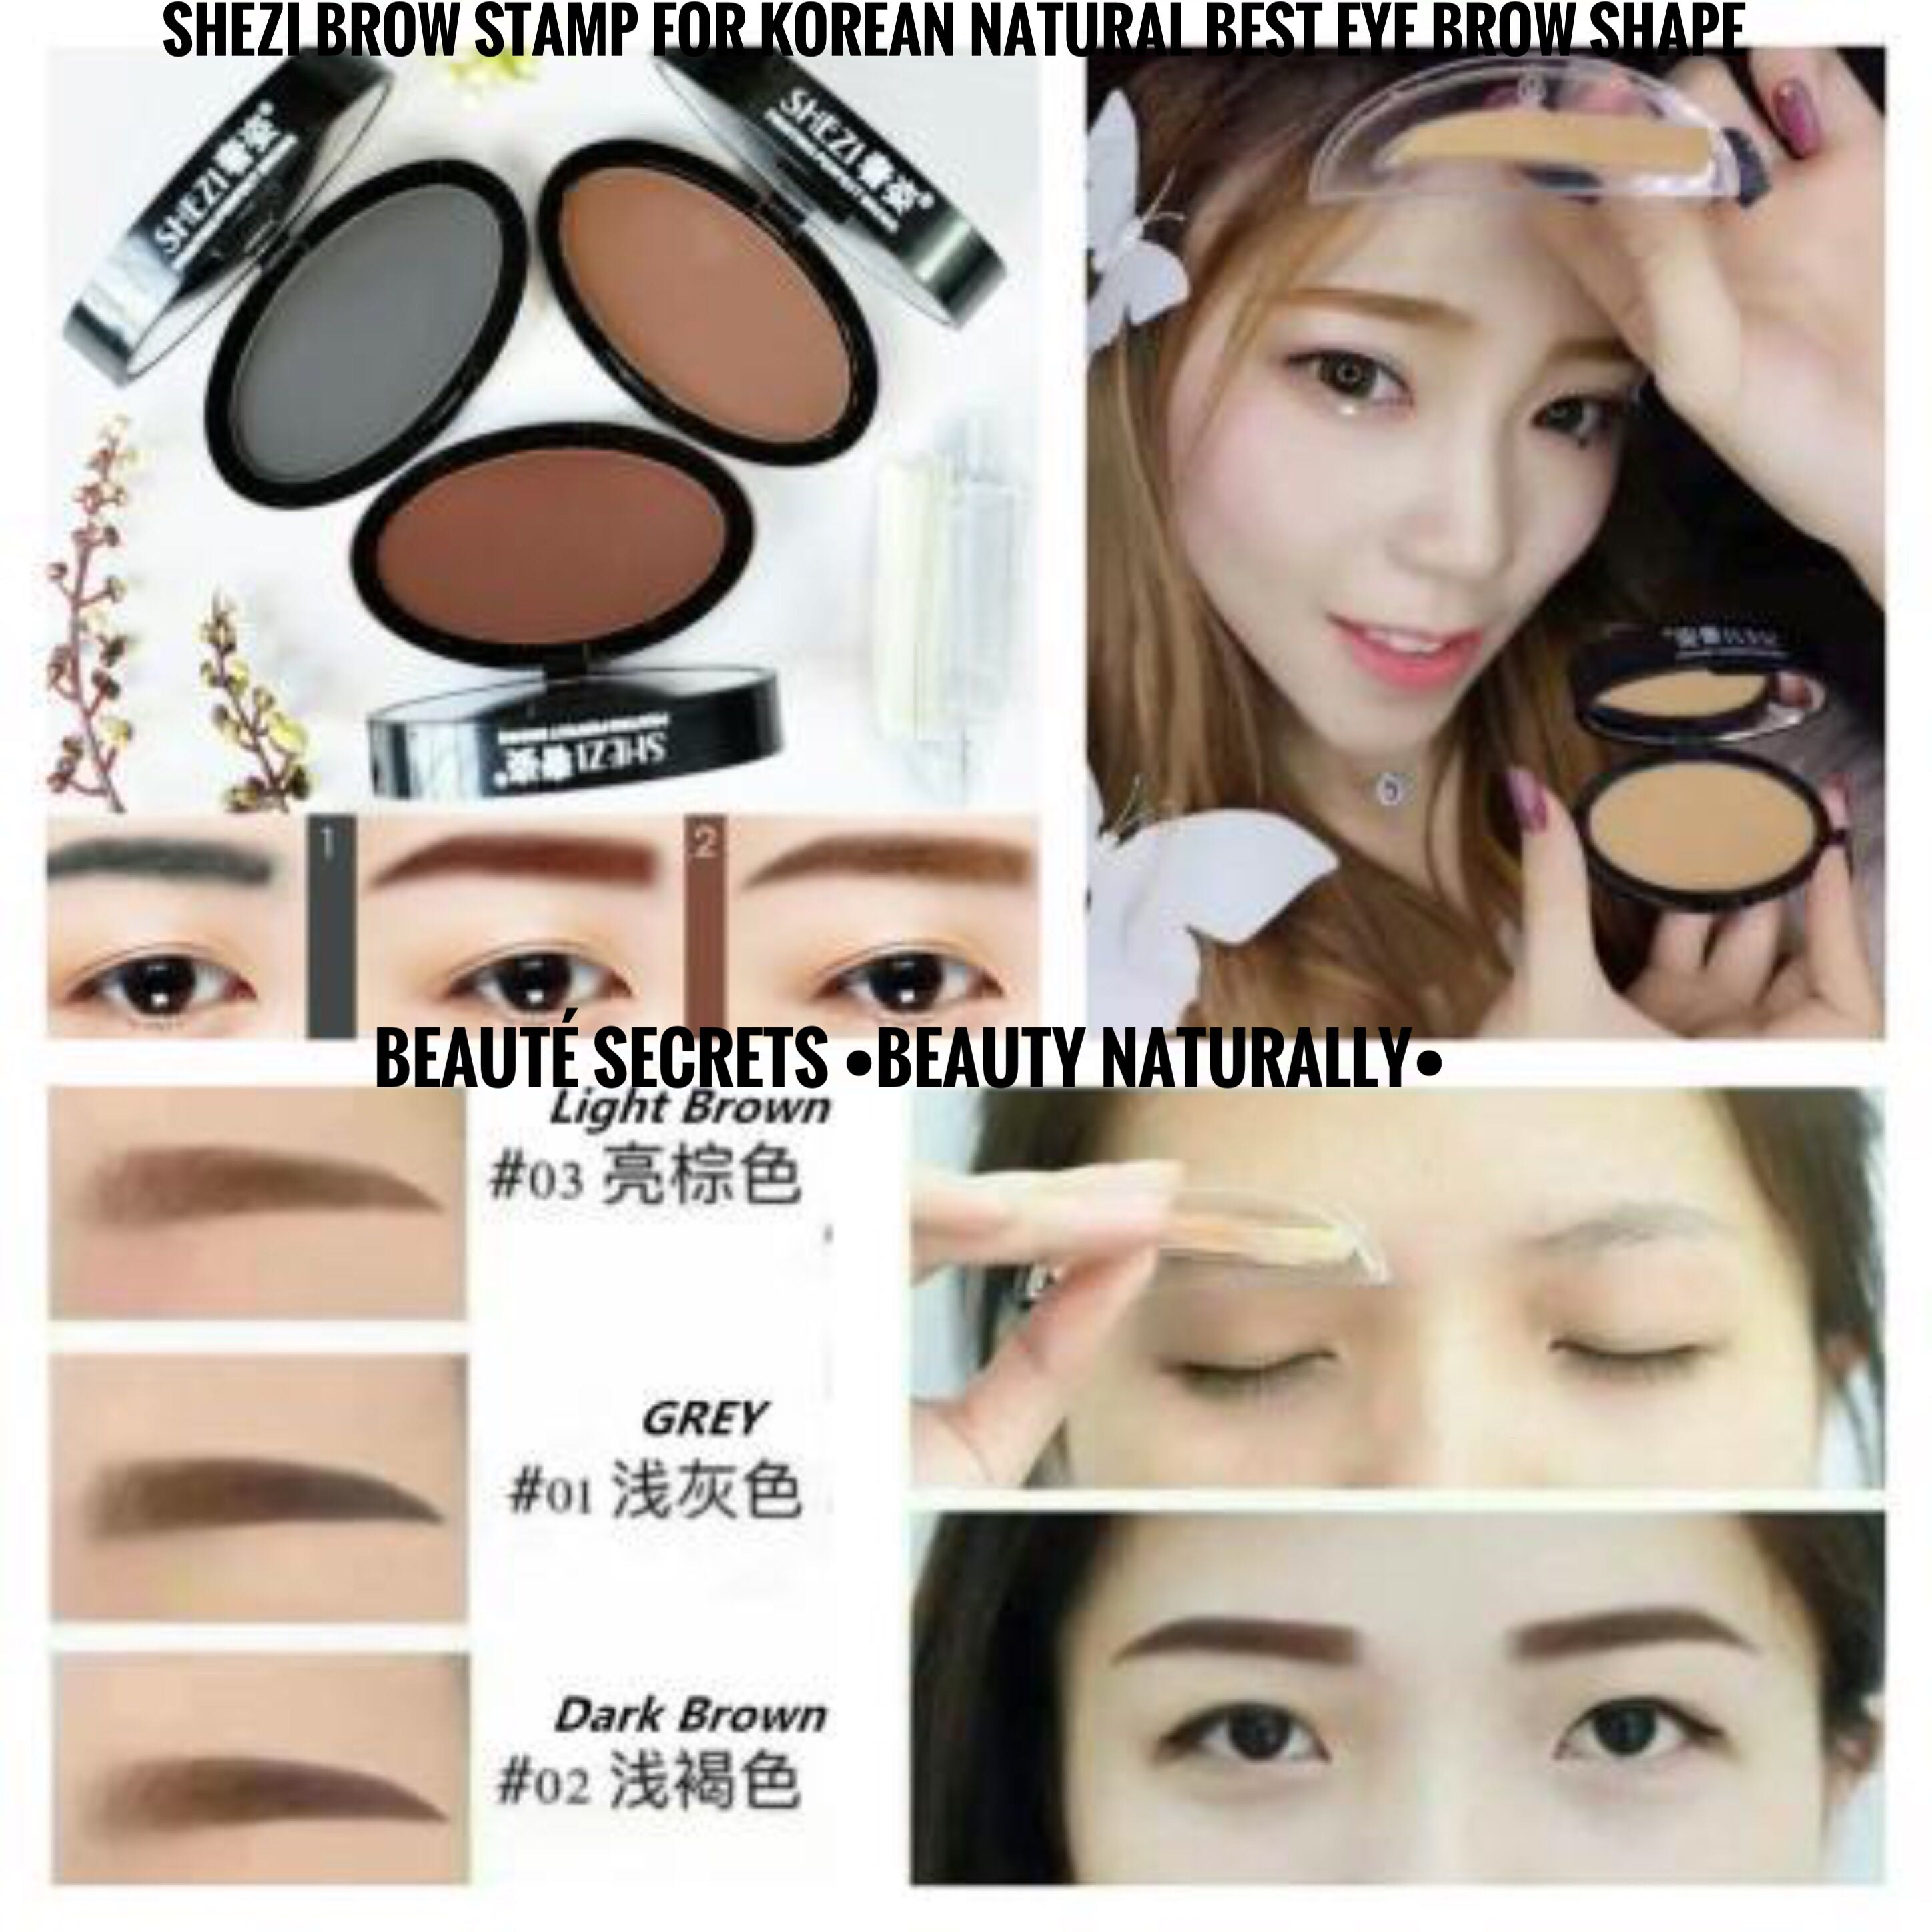 Shezi Brow Stamp For Korean Natural Best Eyebrow Shape Health Beauty Makeup On Carousell